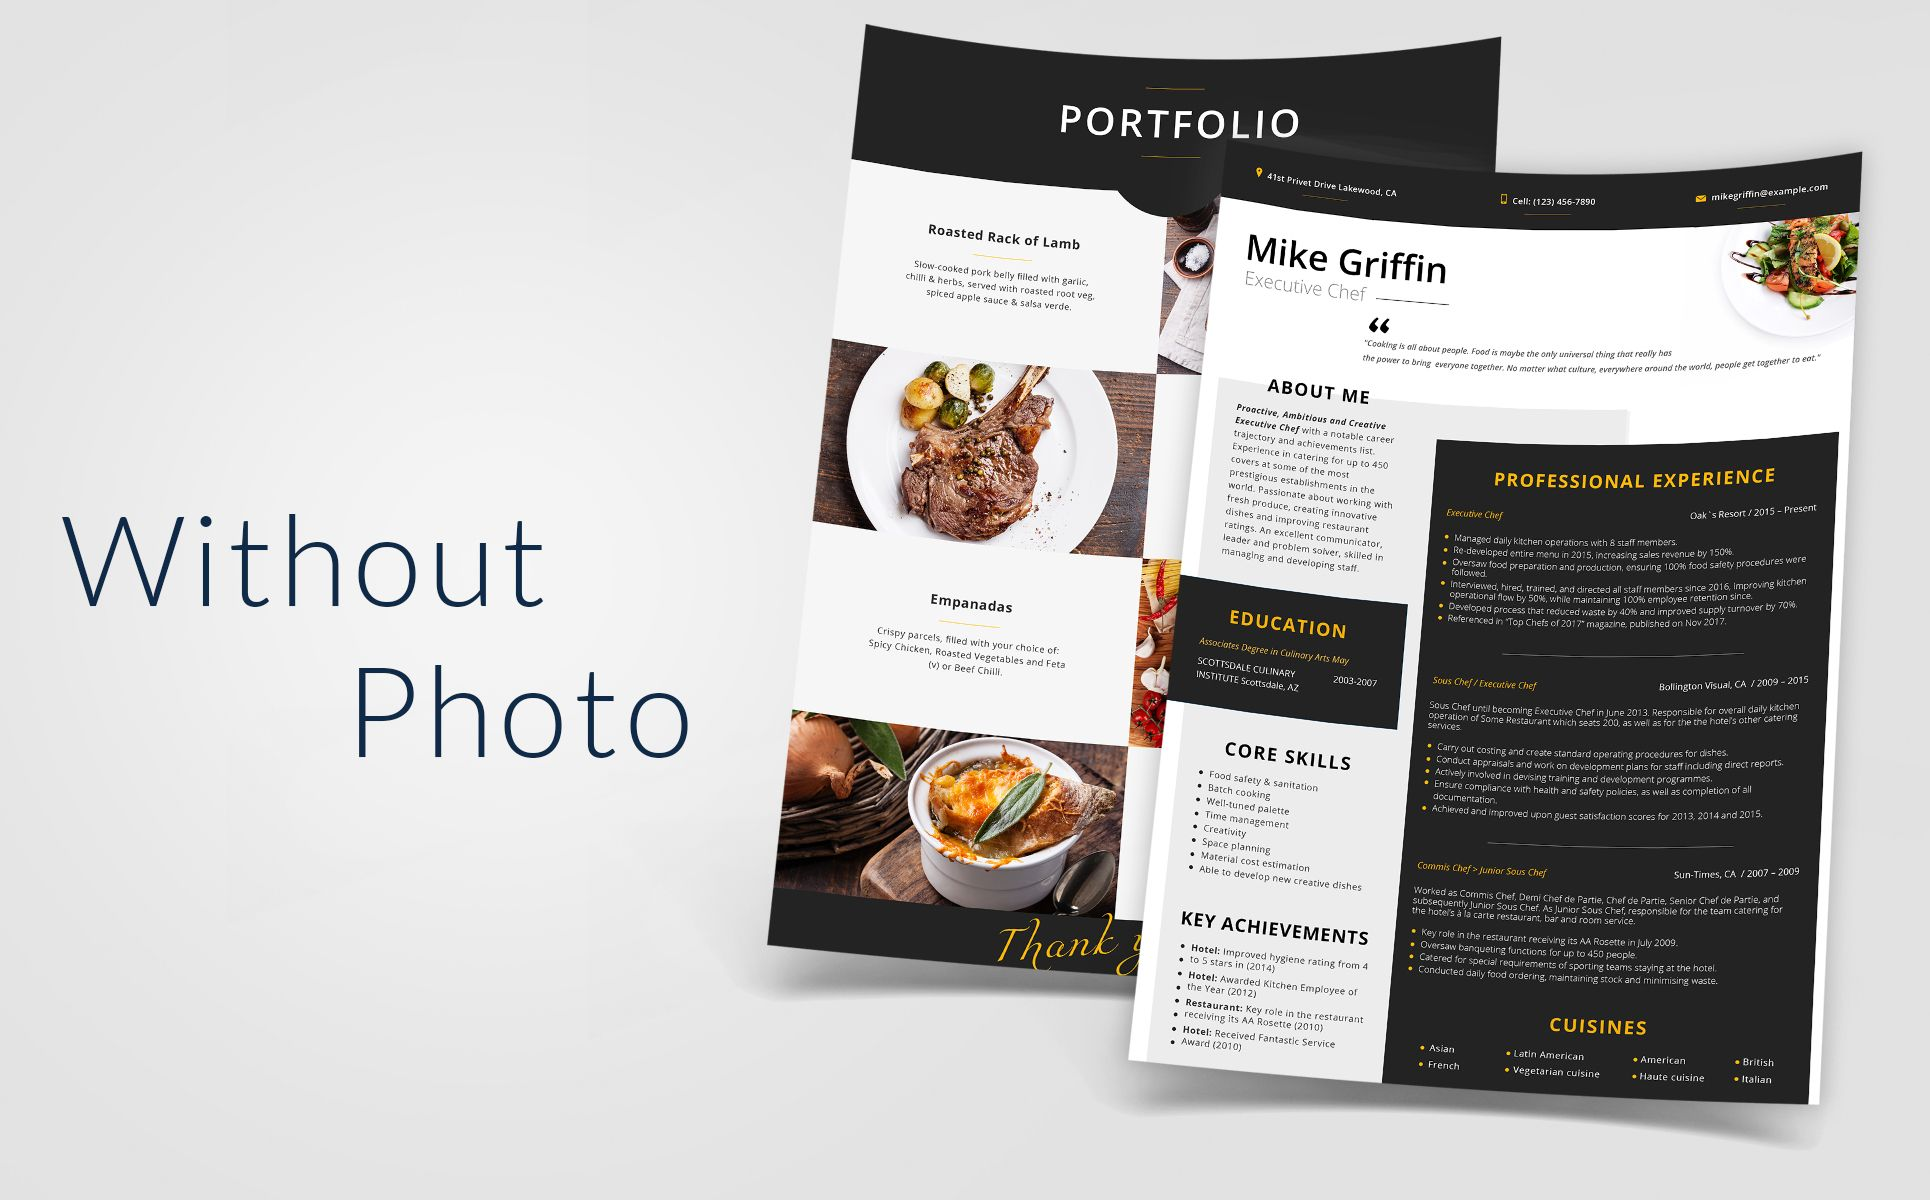 Mike Griffin Executive Chef Resume Template 66432